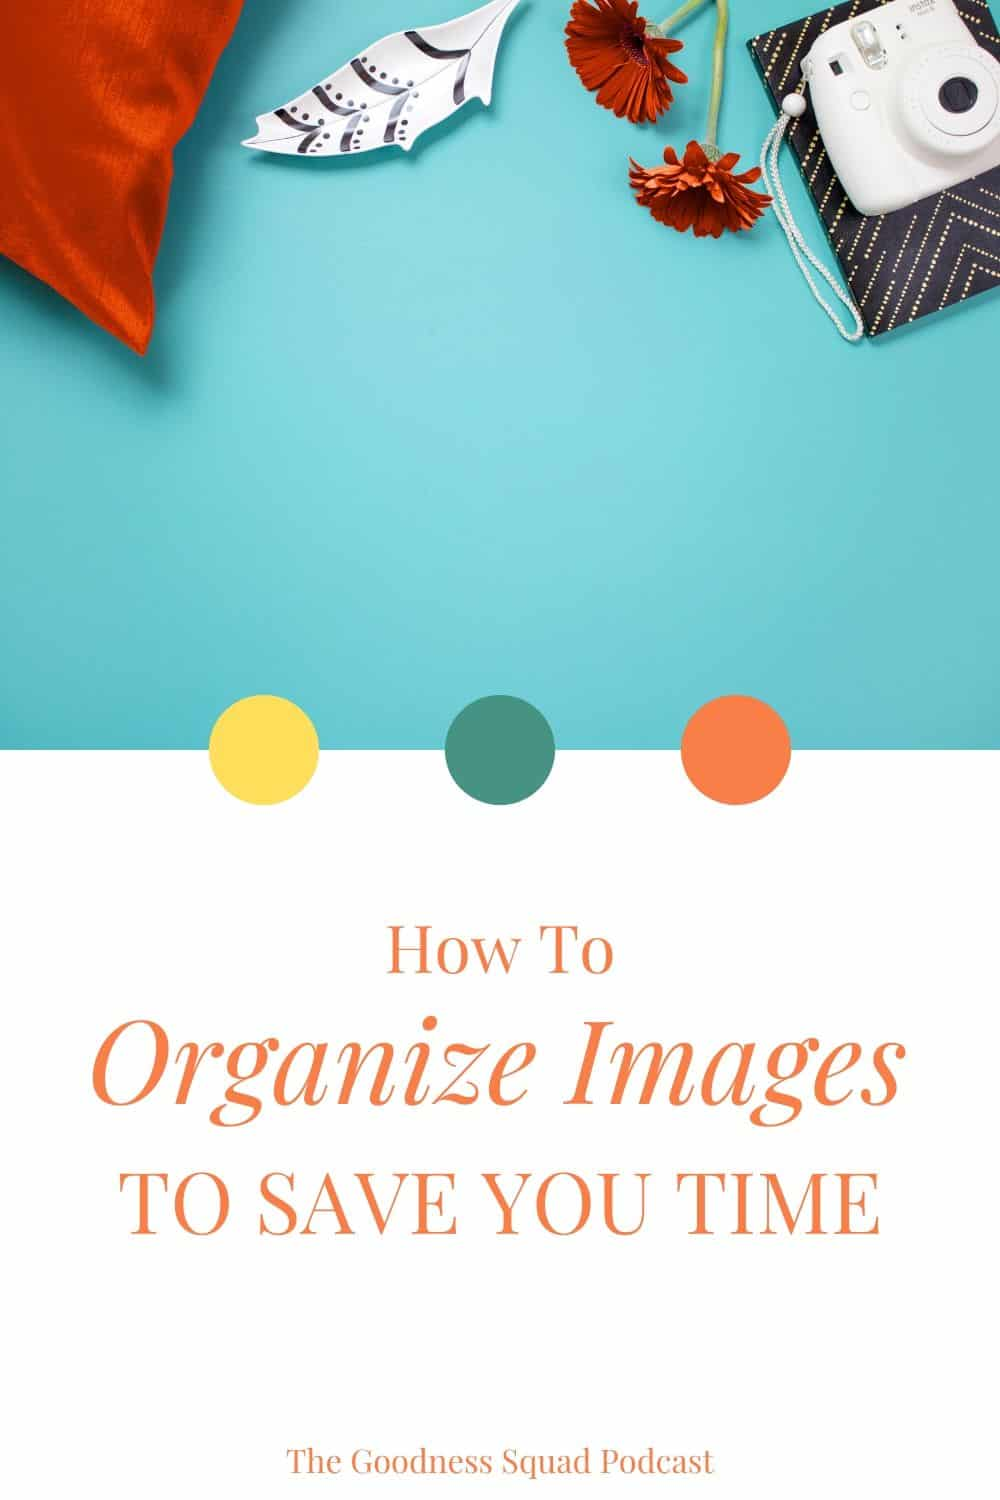 018_A simple tip for organizing images that will save you time and money